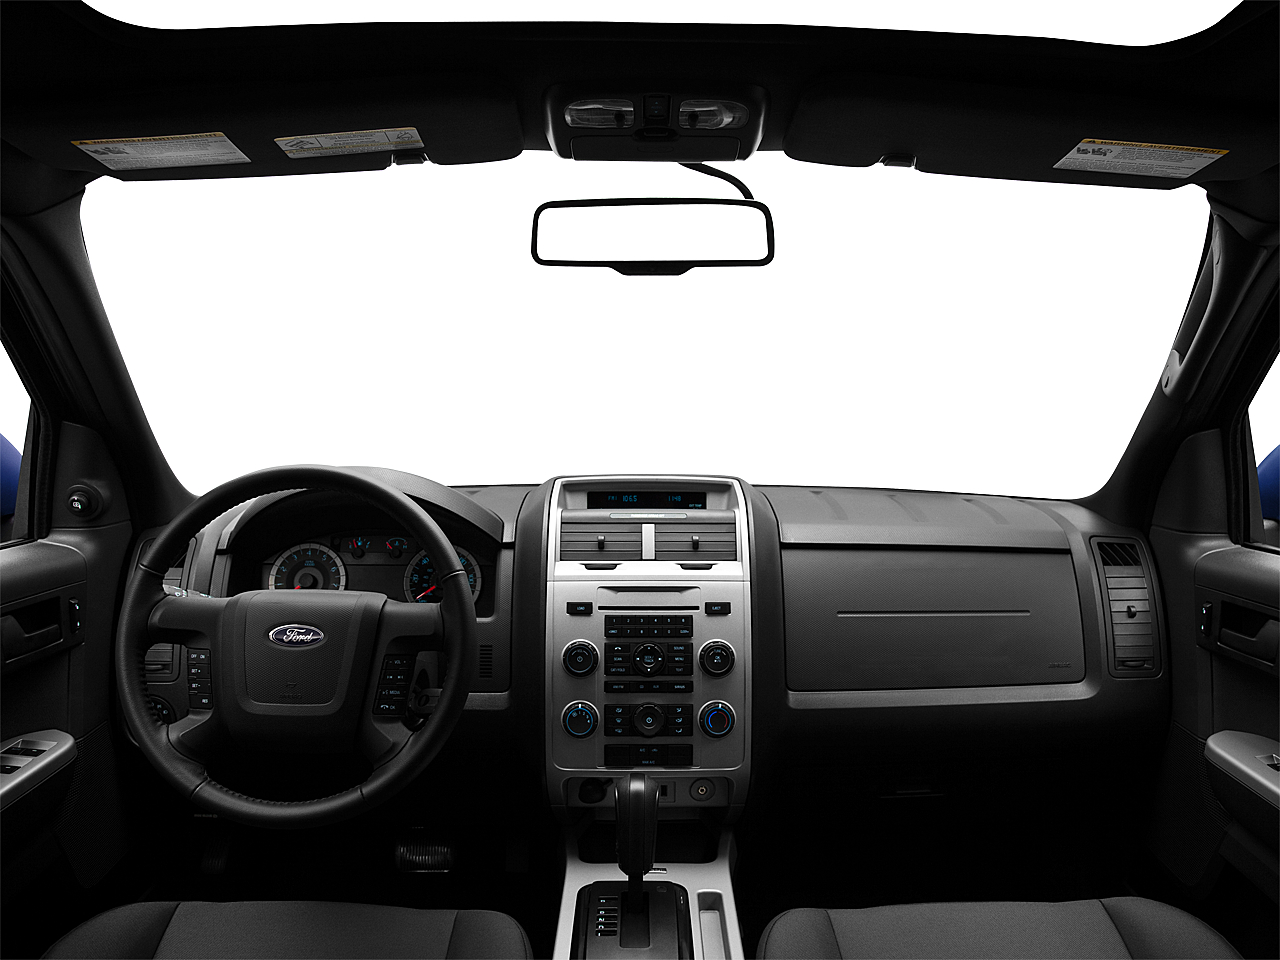 2011 Ford Escape XLT I4, centered wide dash shot